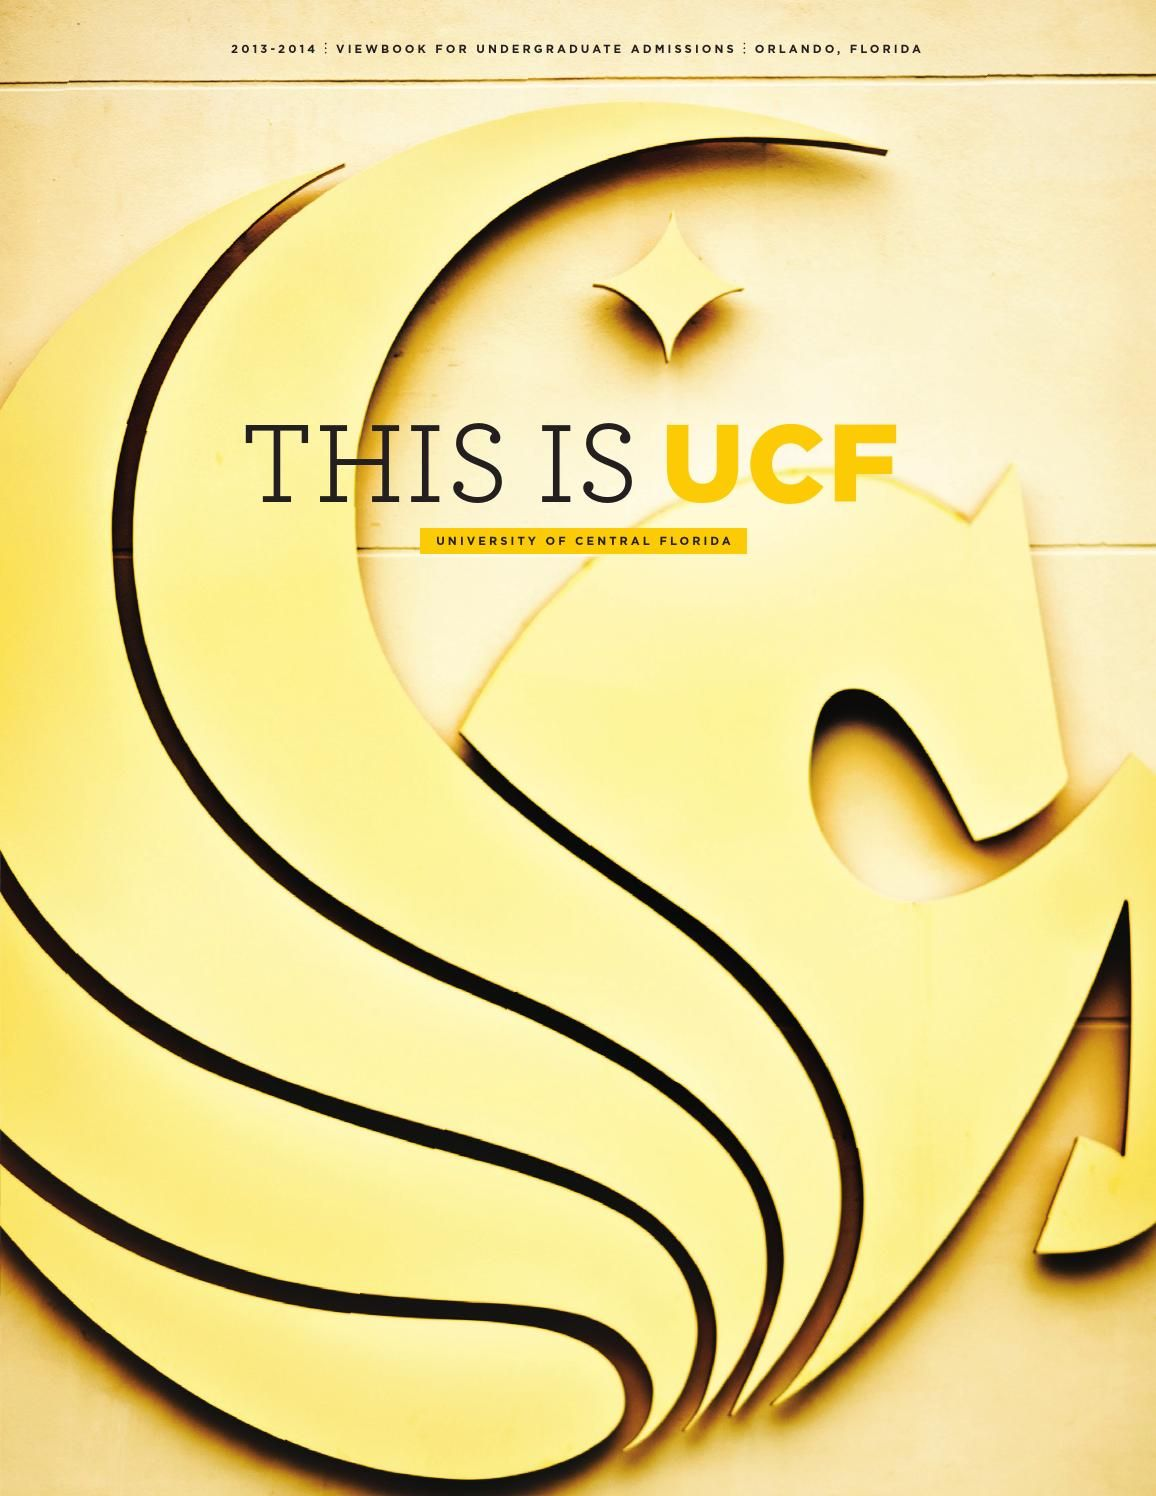 University of Central Florida Viewbook 20132014 (With